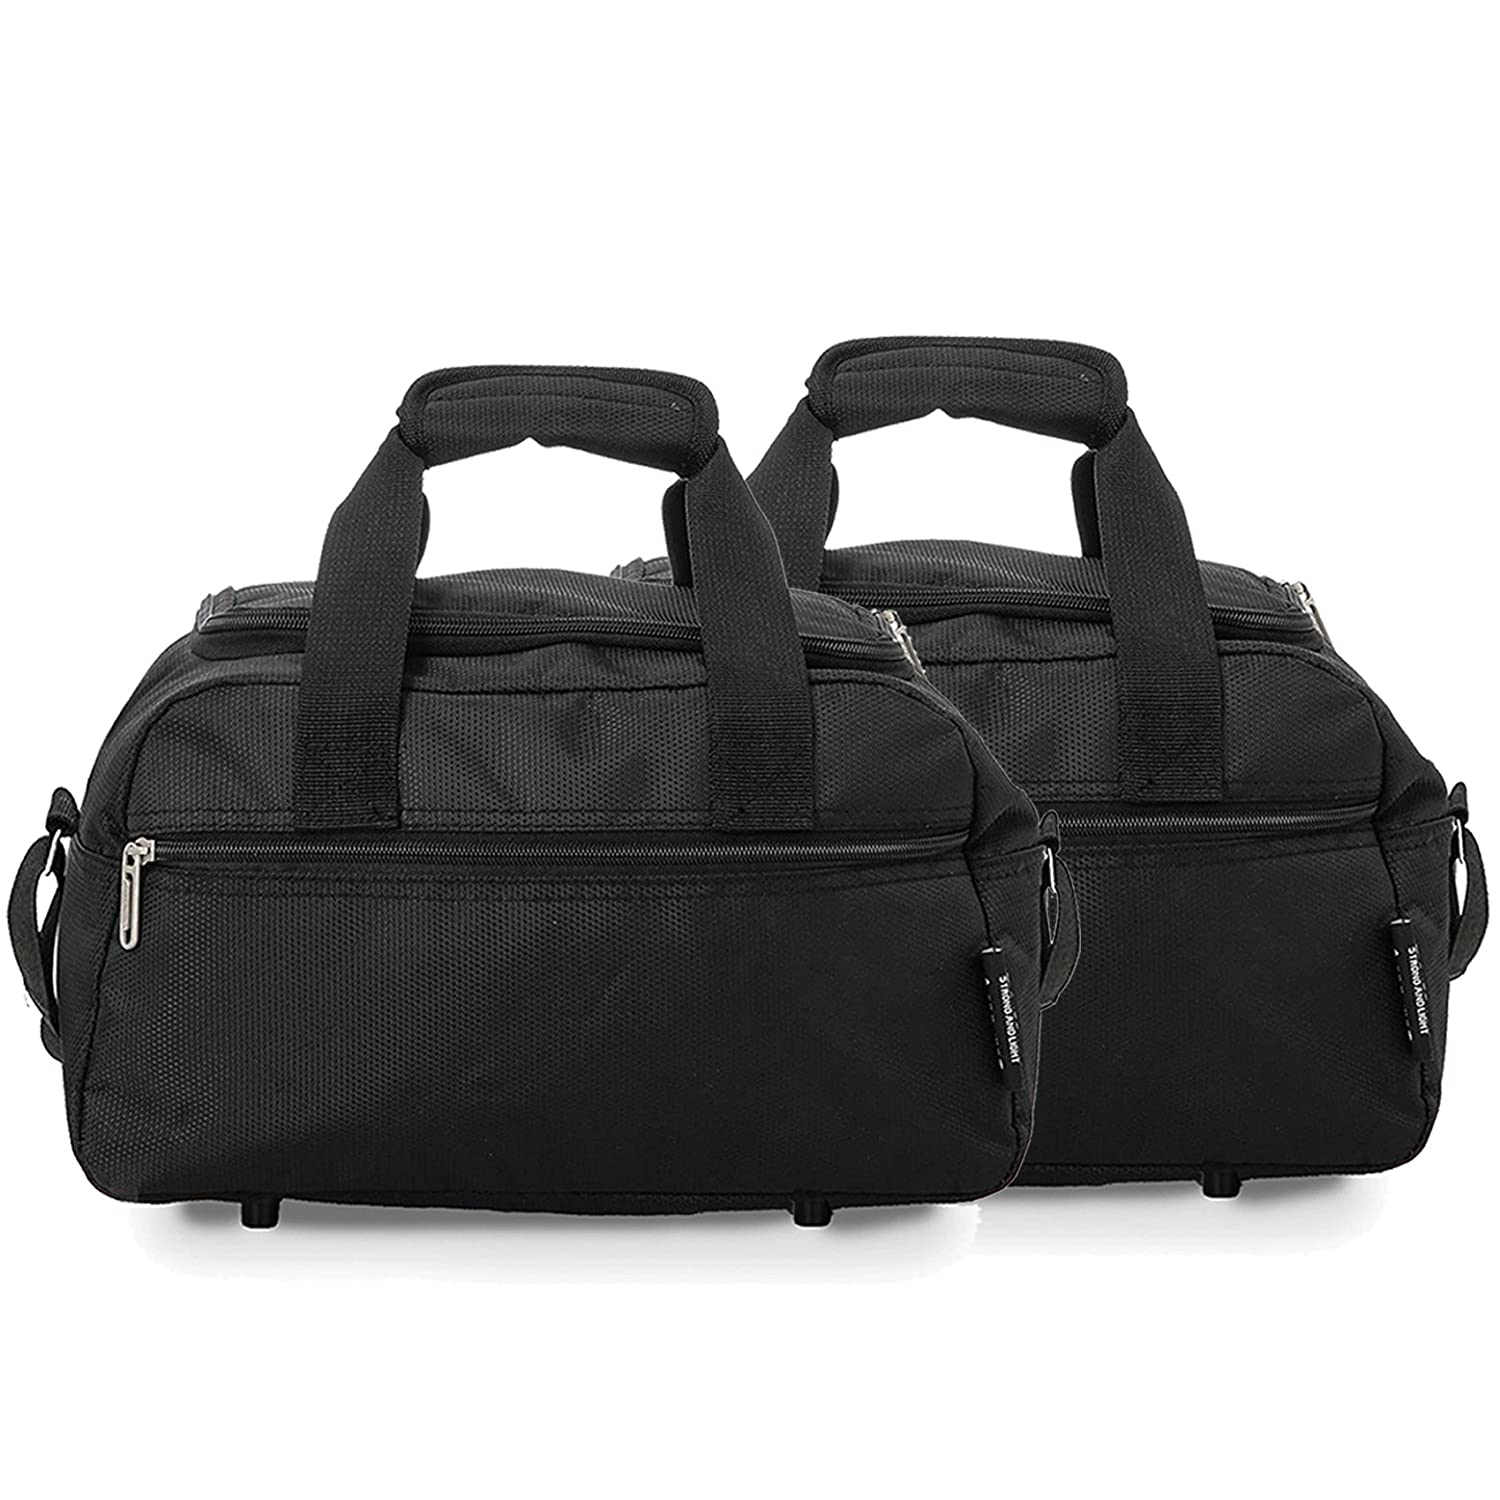 Aerolite 35x20x20cm Maximum Ryanair Second Additonal Hand Luggage Cabin  Holdall Bag - Carry on for Free with Ryanair! (2 x Black)  Amazon.co.uk   Luggage 4ee9b149cb